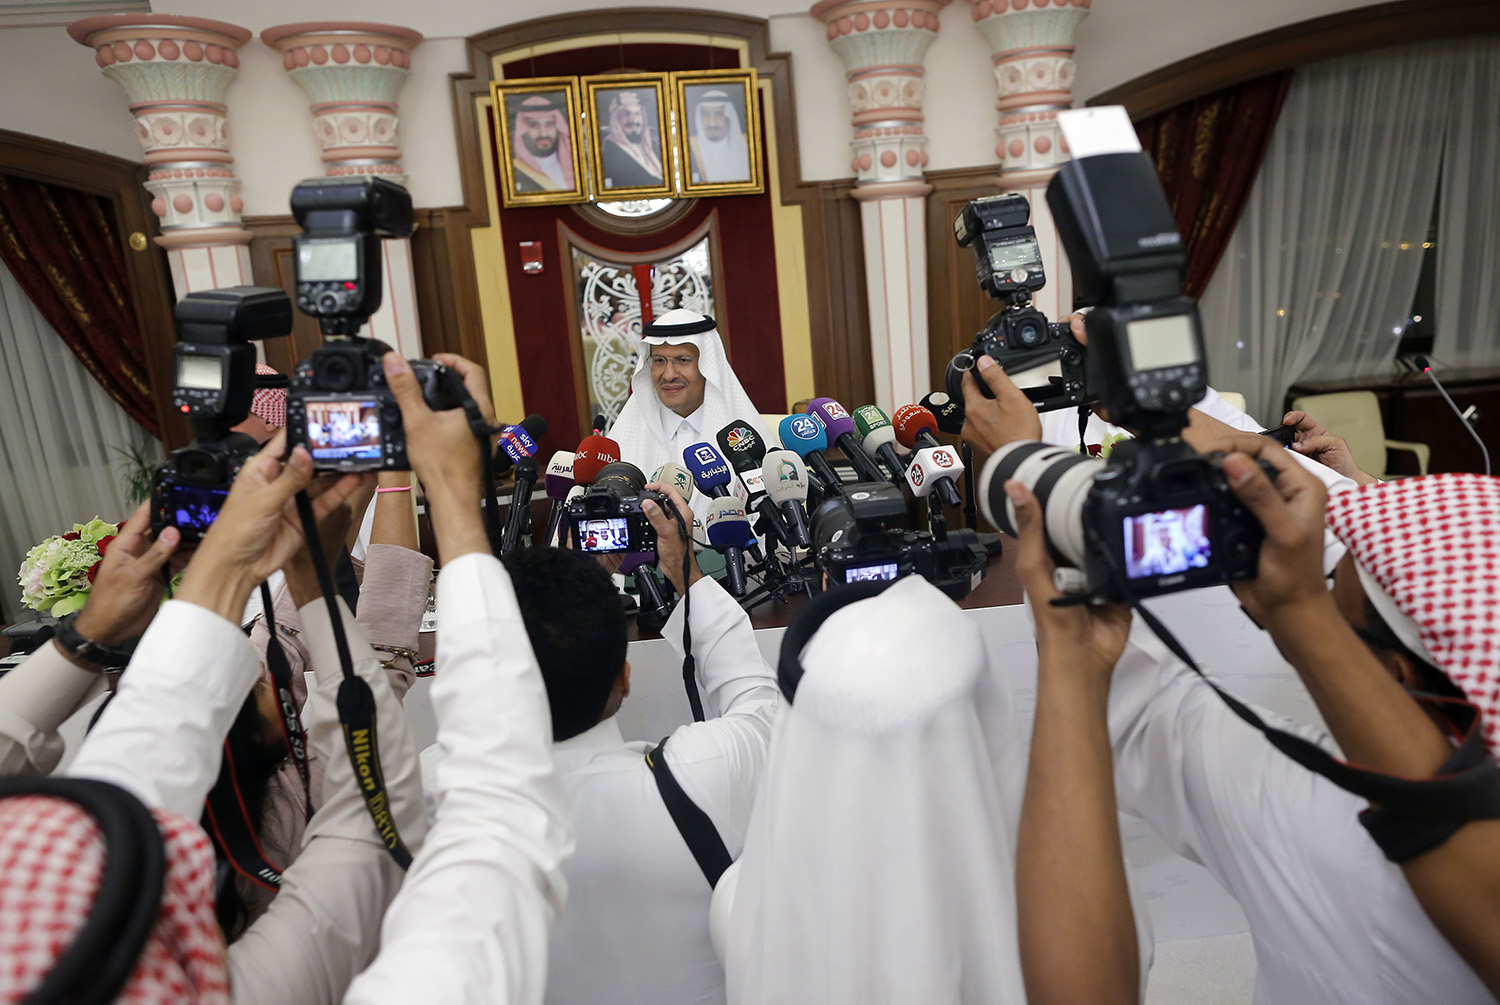 Saudi Energy Minister Prince Abdulaziz bin Salman, is surrounded by photographers as he enters a press conference in Jiddah, Saudi Arabia, Tuesday, Sept. 17, 2019. (Amr Nabil/AP)